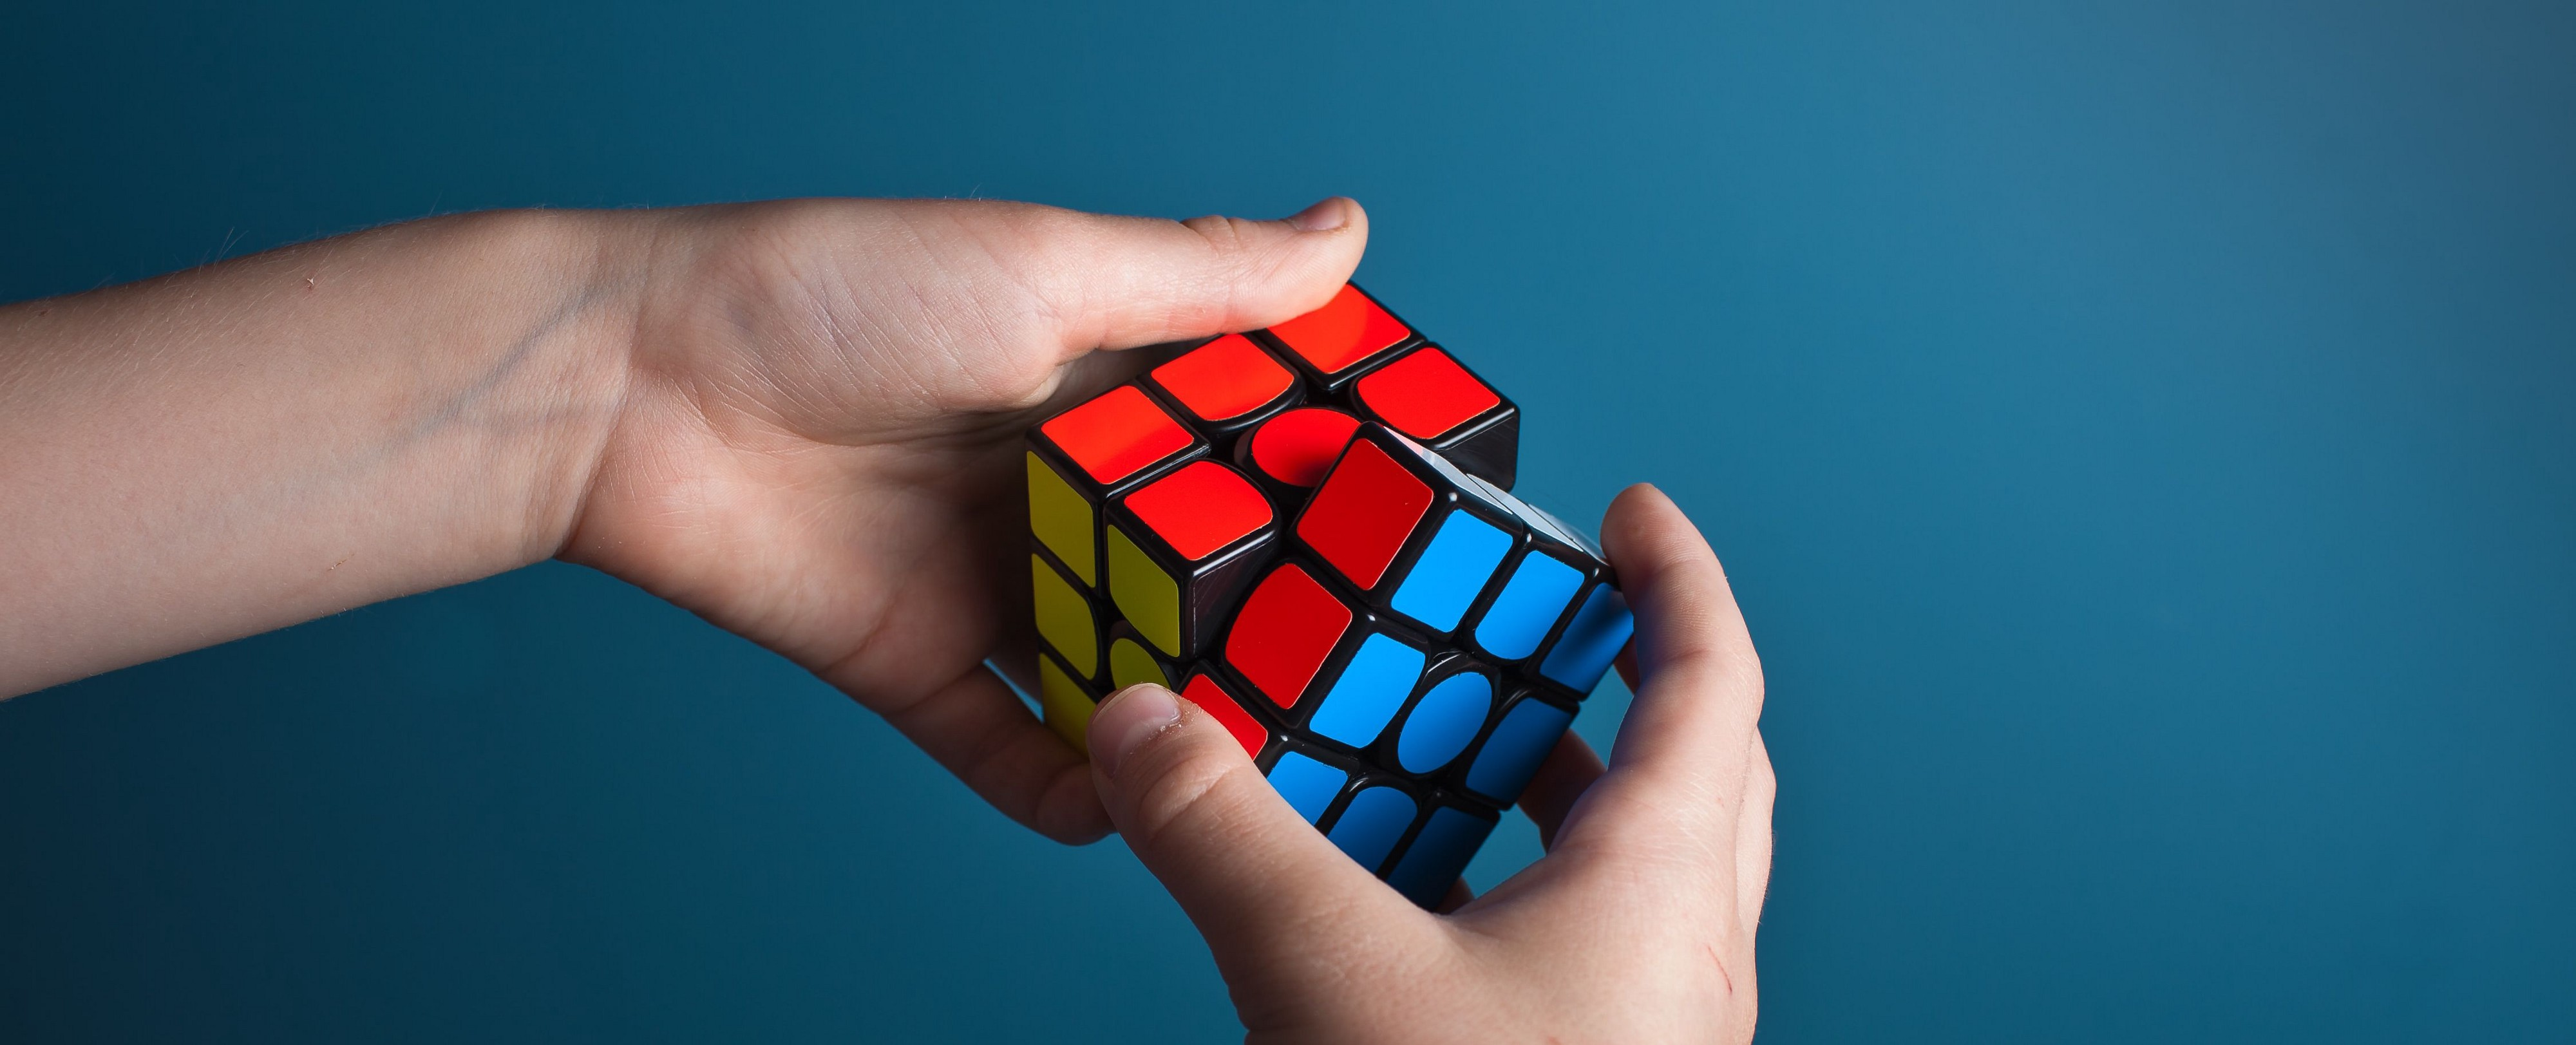 Finding the solution to the magic cube.